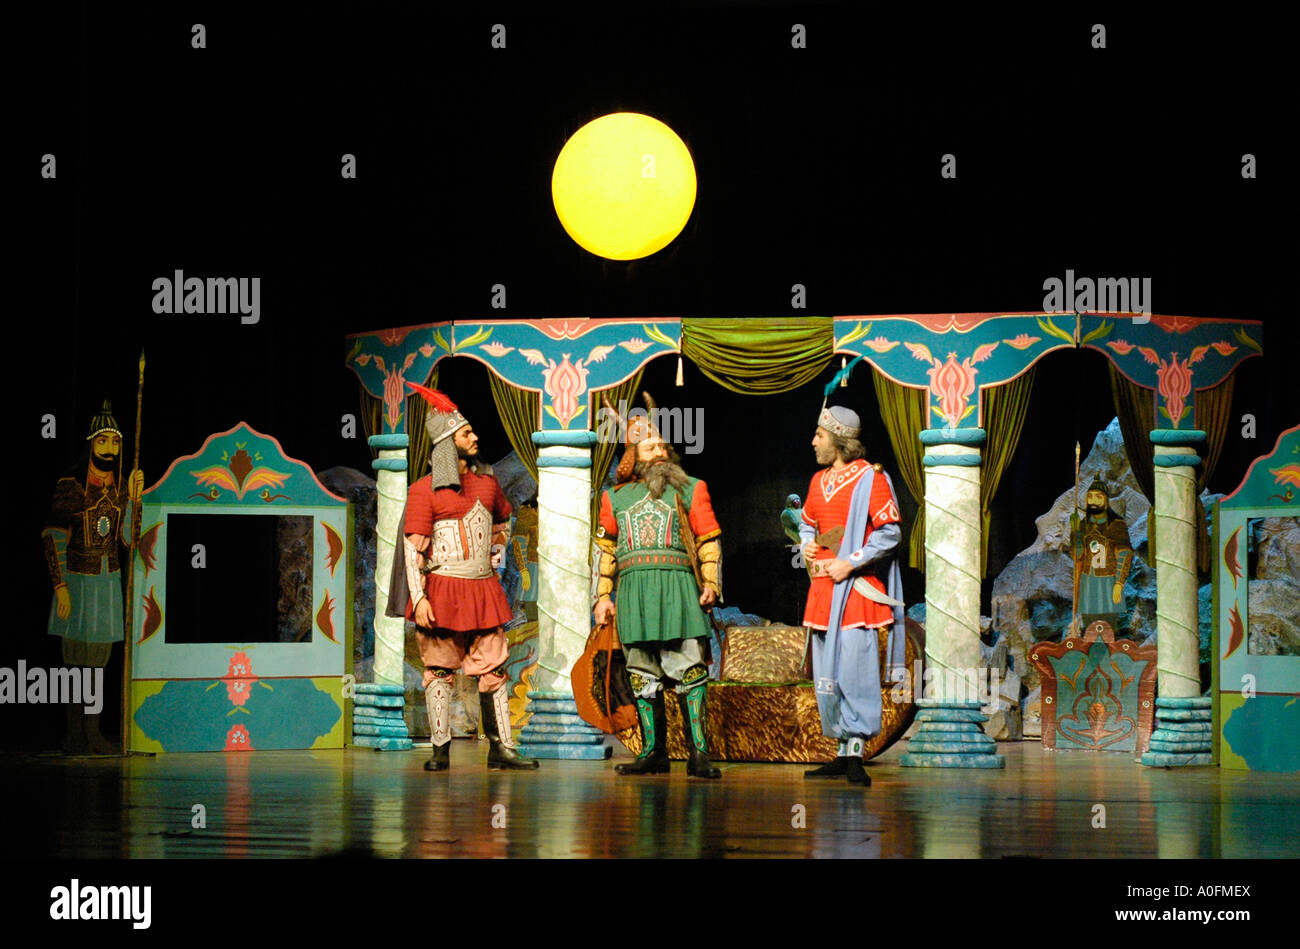 Non Muslim Perspective On The Revolution Of Imam Hussain: A Traditional Persian Play At A Theater In Northern Tehran